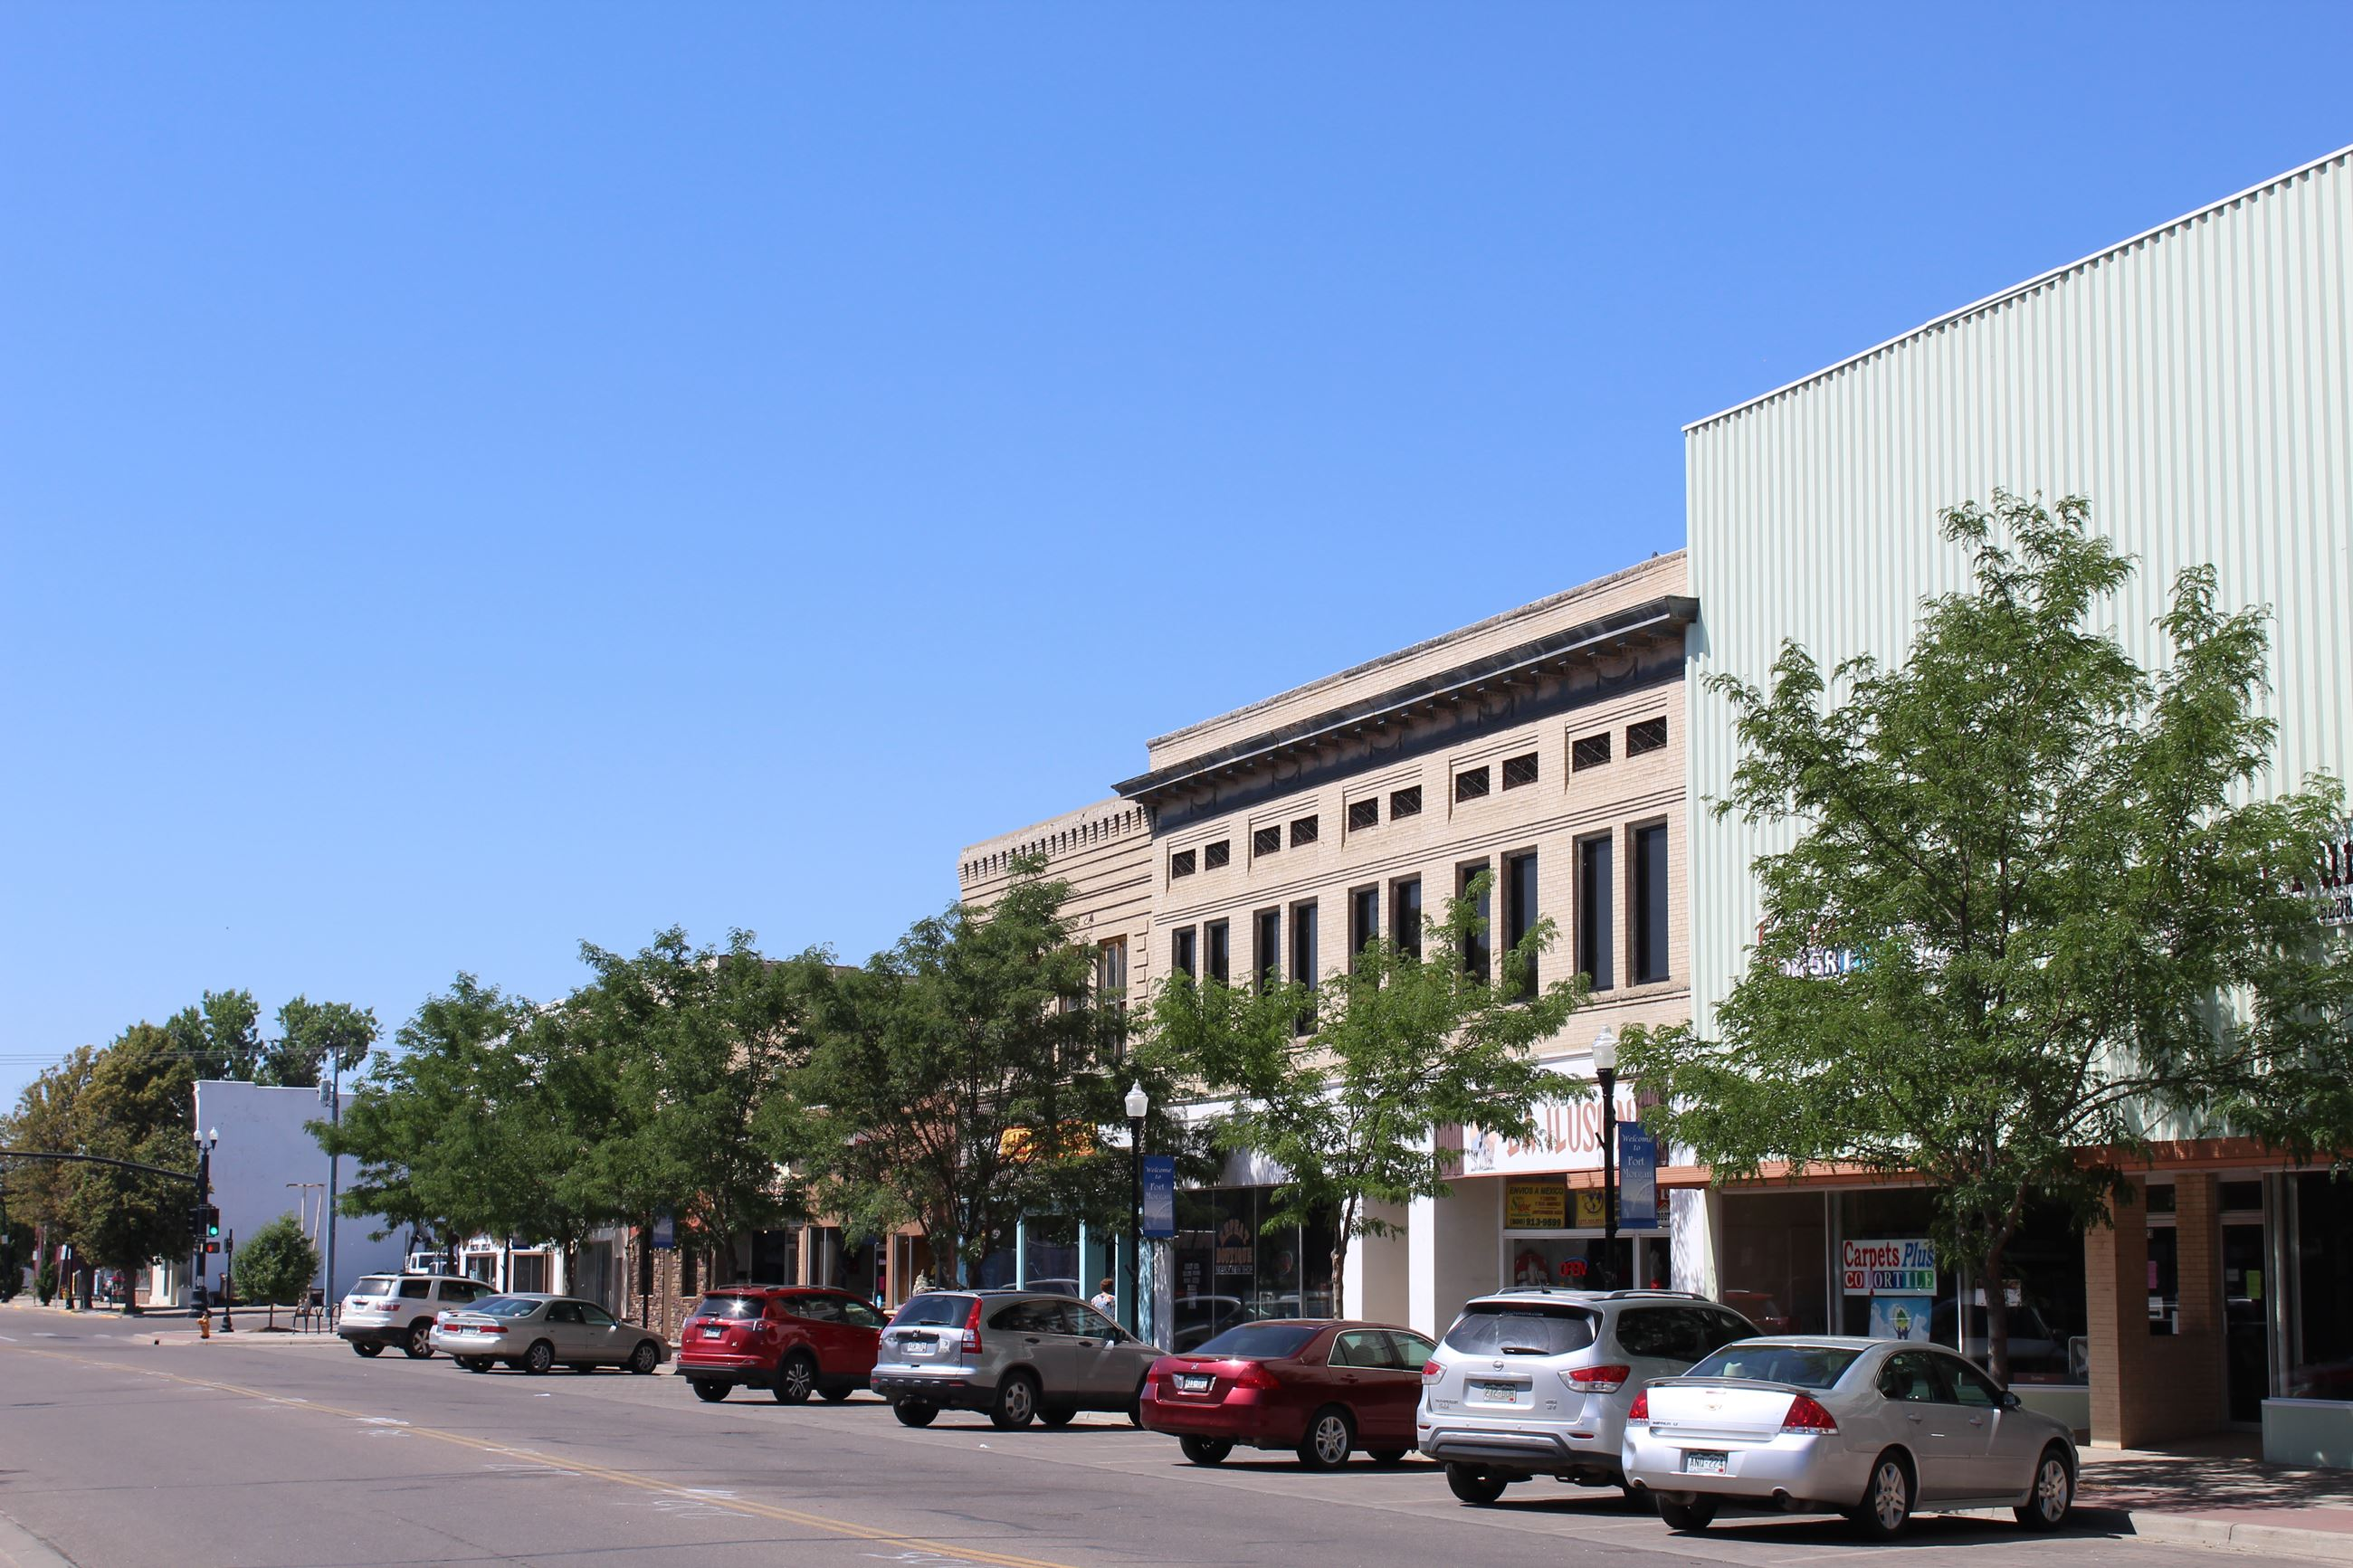 200 Block of Main St. Downtown